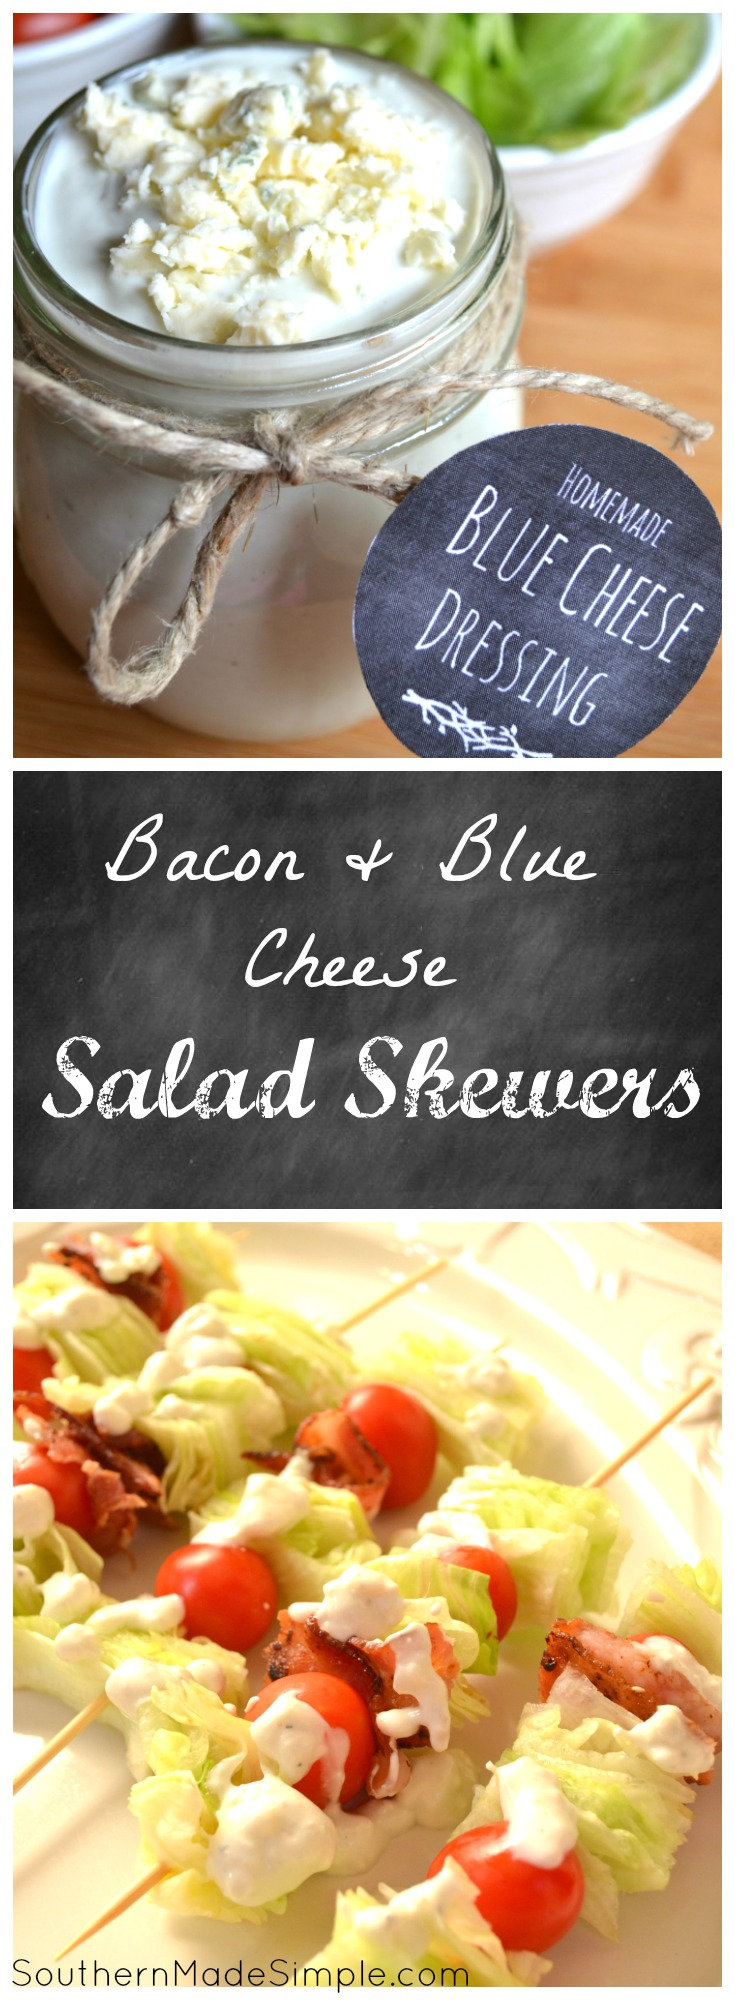 Bacon & Blue Cheese Salad Skewers - the perfect quick and easy way to serve something fresh and delicious on nights where there's little time to prepare supper! #FreschEats #ad